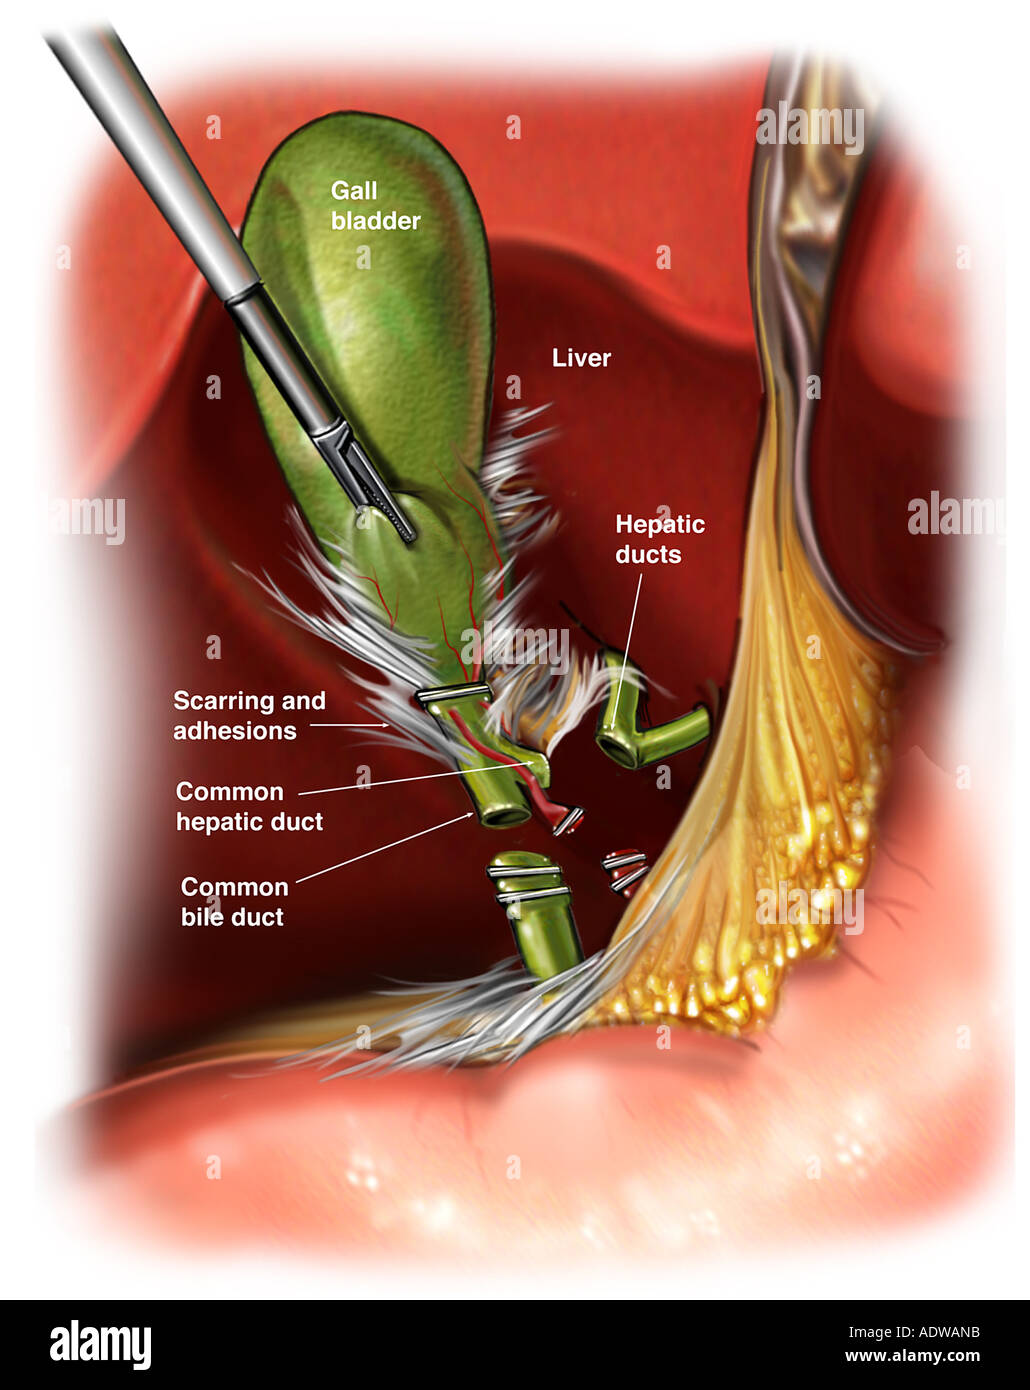 Classic Injury To The Common Bile Duct Stock Photo 7712986 Alamy